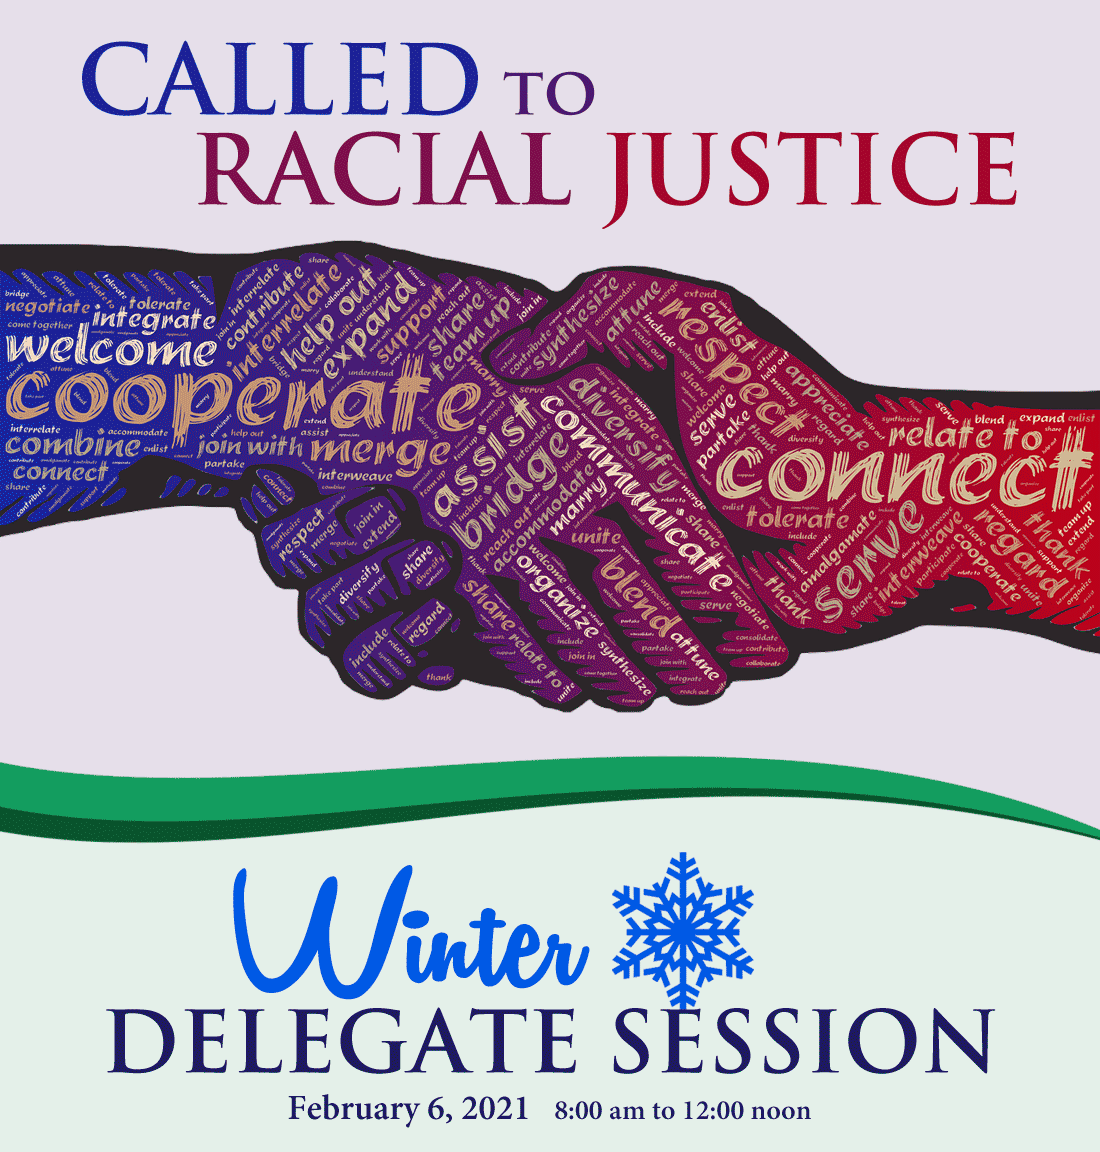 Called to Racial Justice